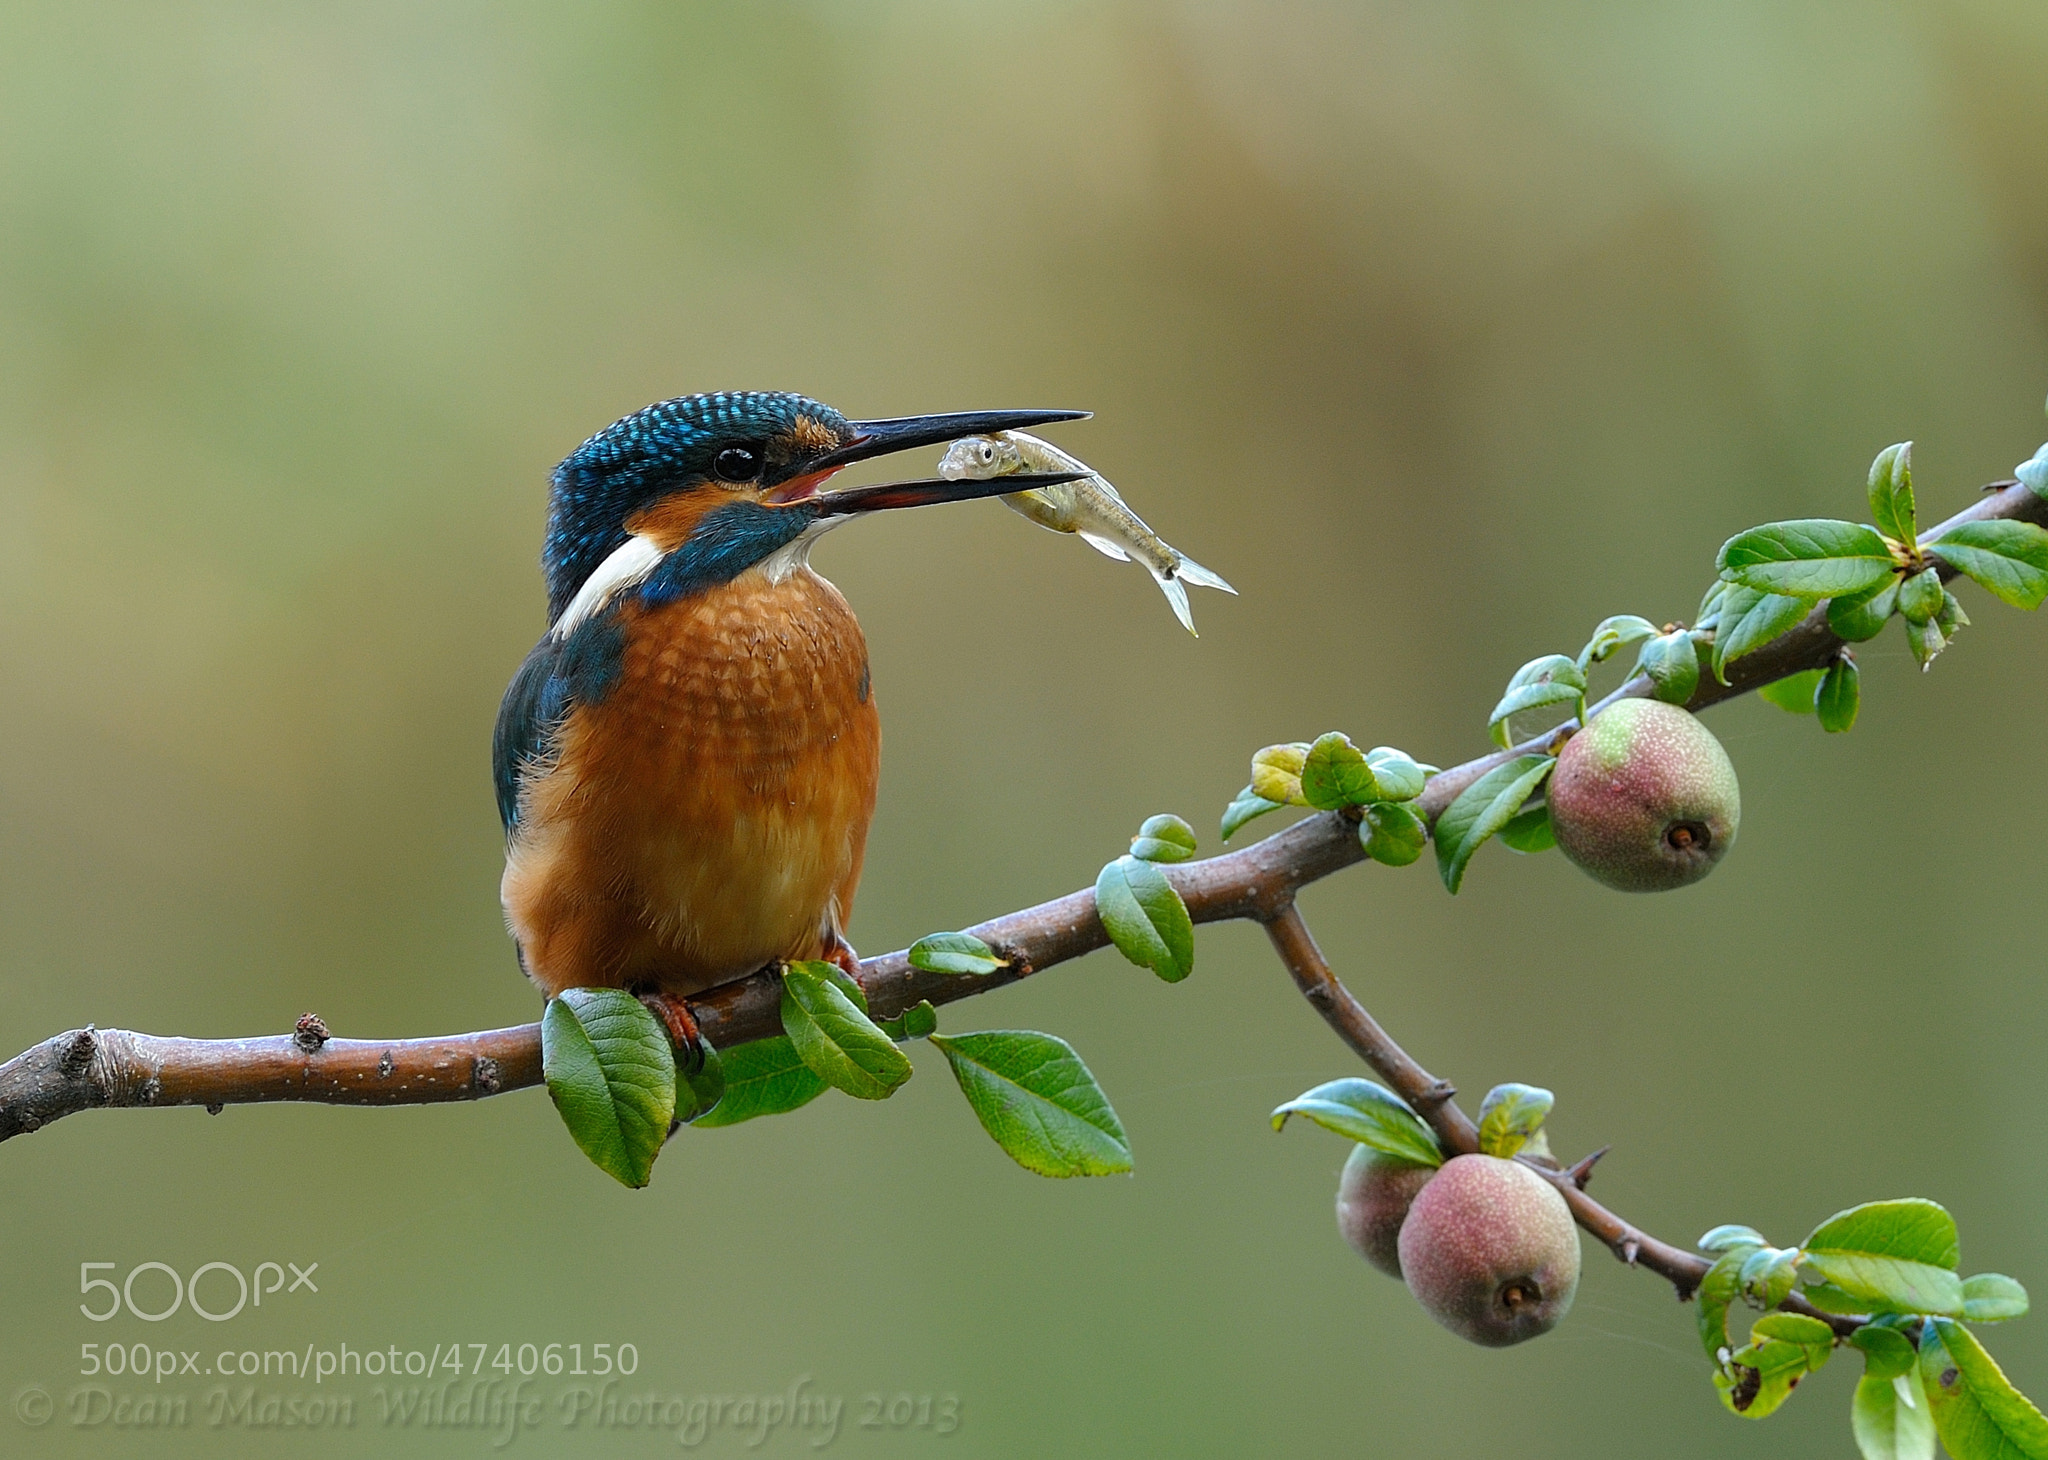 Photograph Kingfisher & Meal ! by Dean Mason on 500px